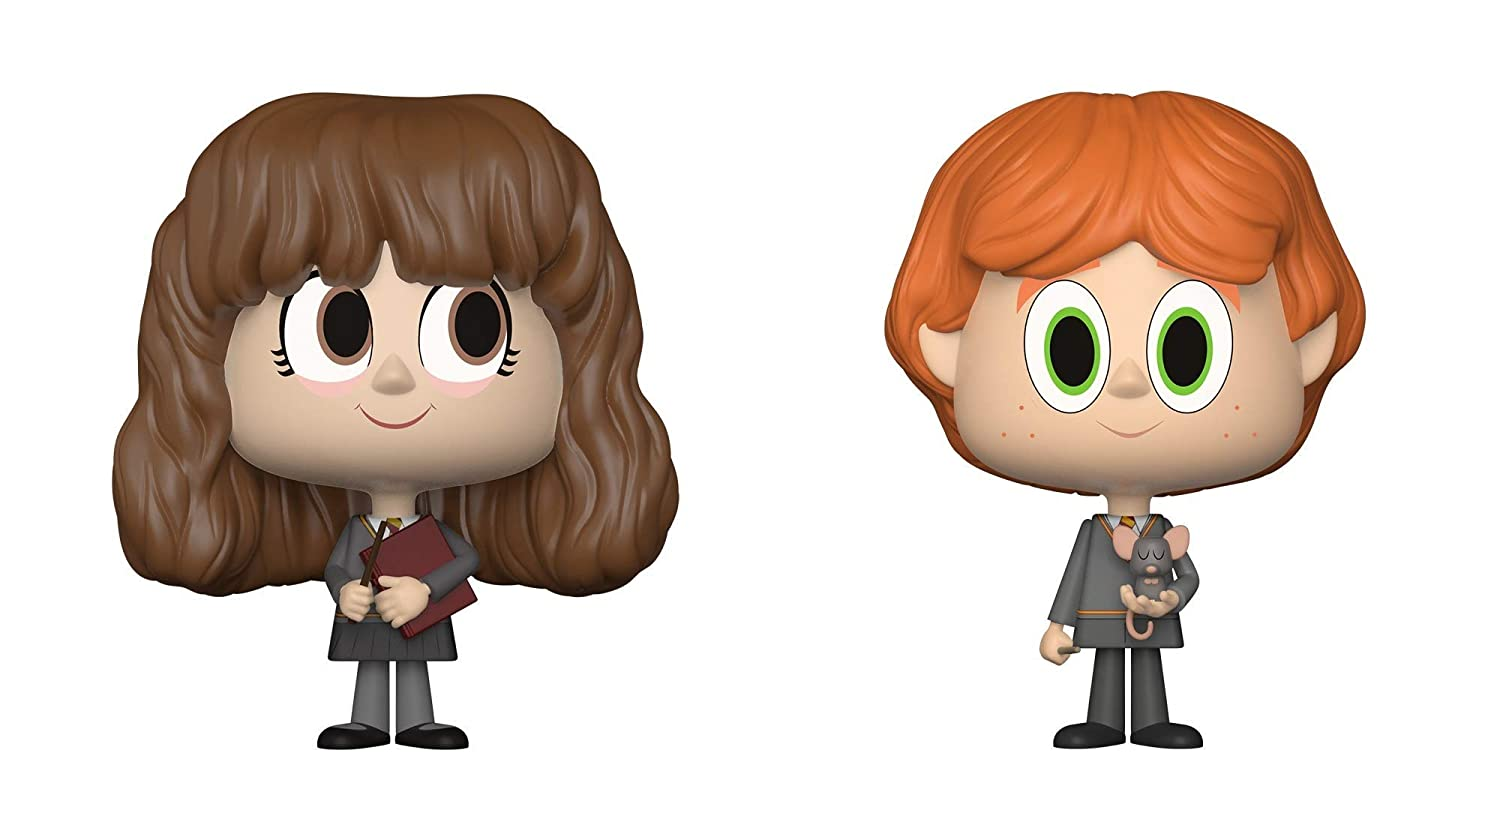 Multicolor 30001 Funko Vynl Ron /& Hermione 2 Pack Harry Potter